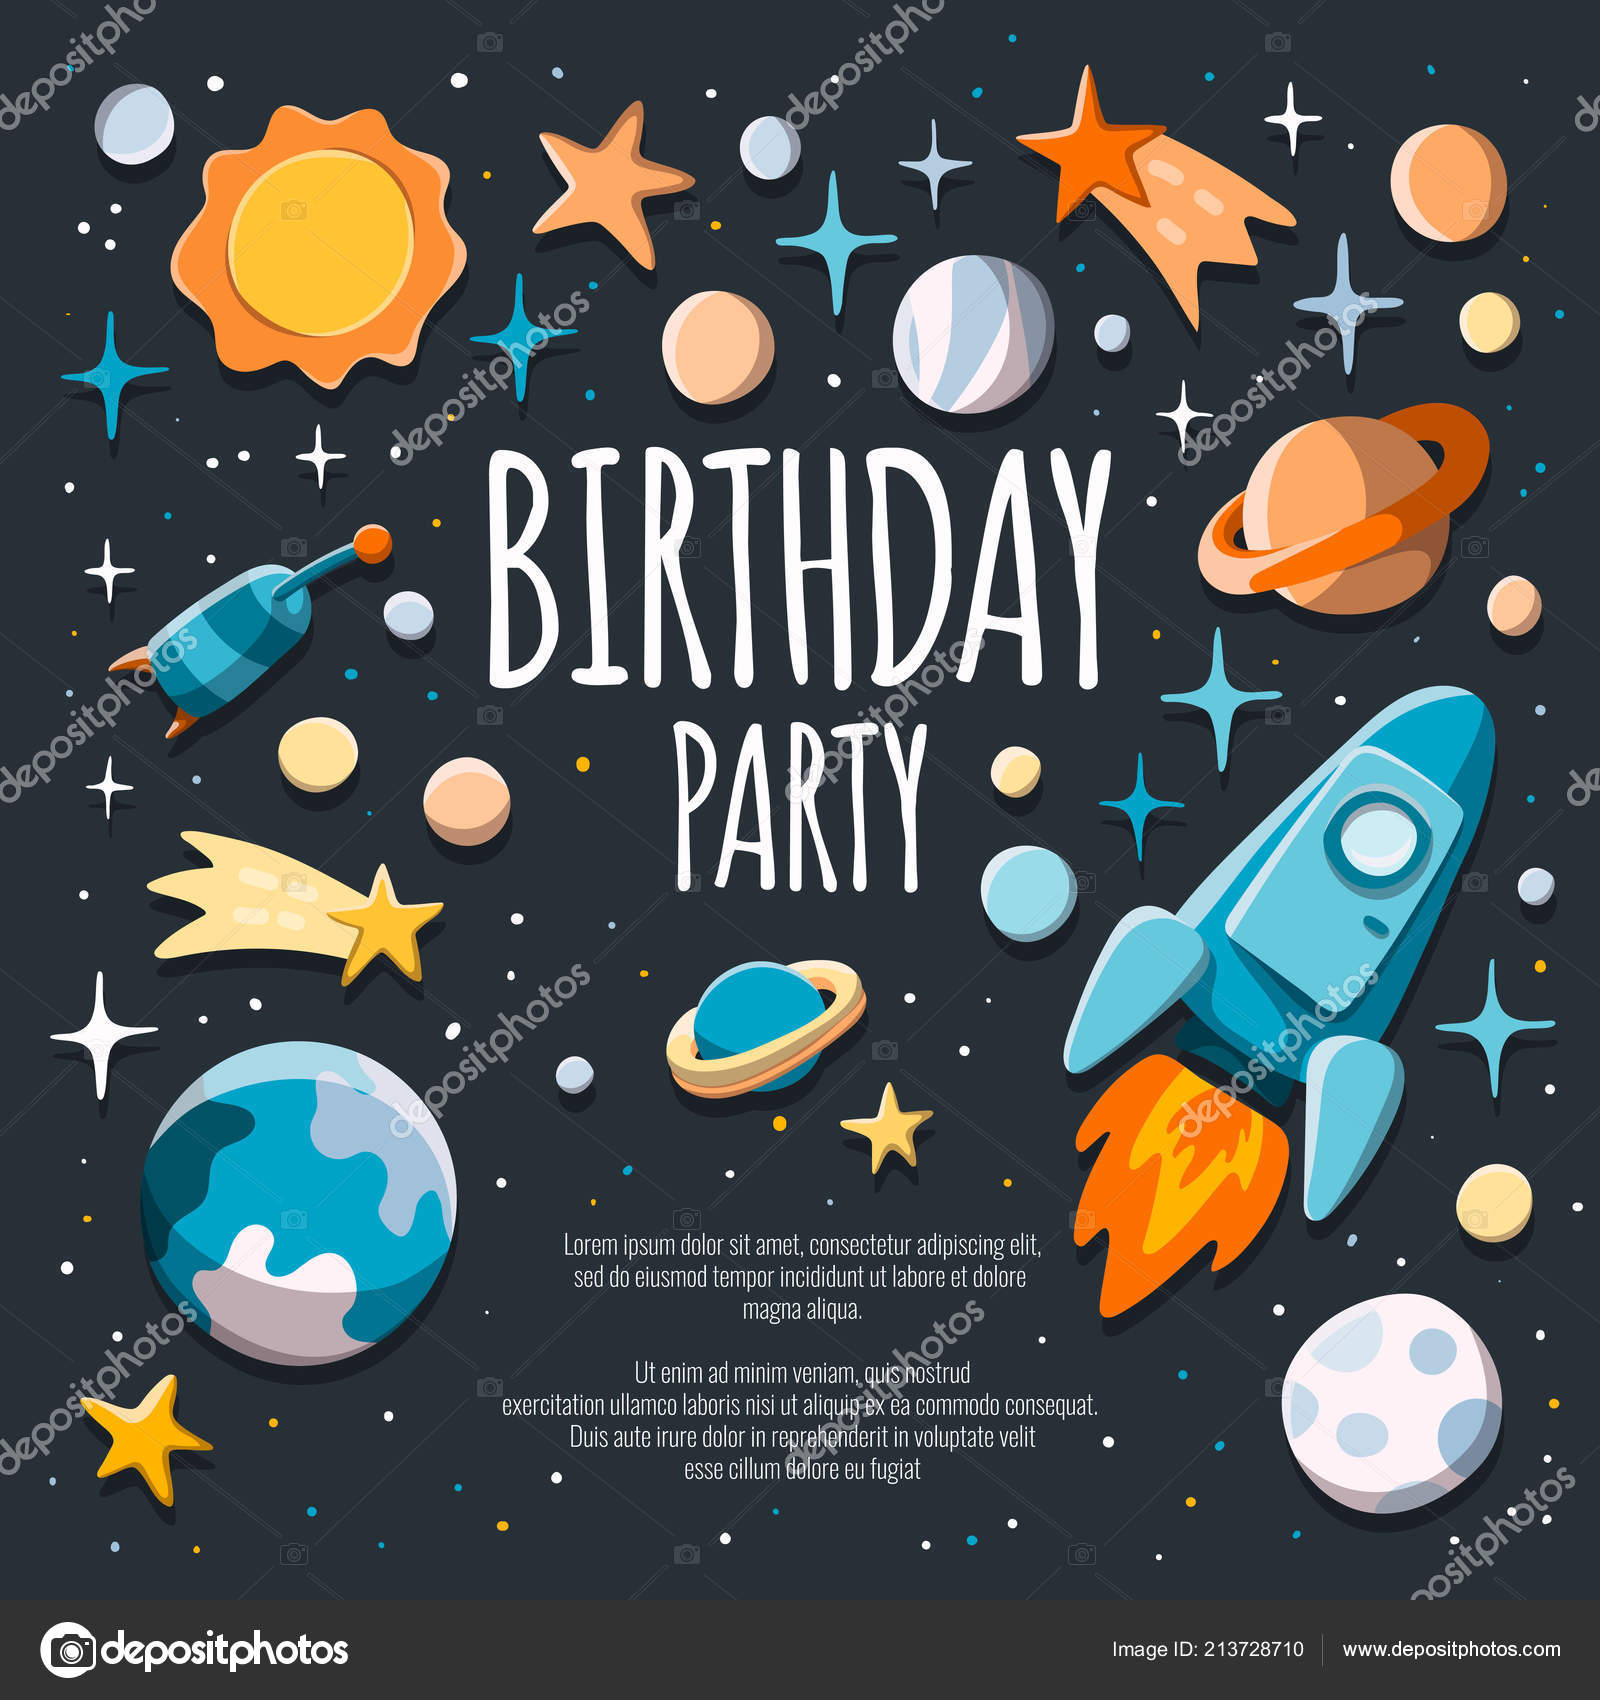 Birthday Party Invitation Flyer Poster Template Background With